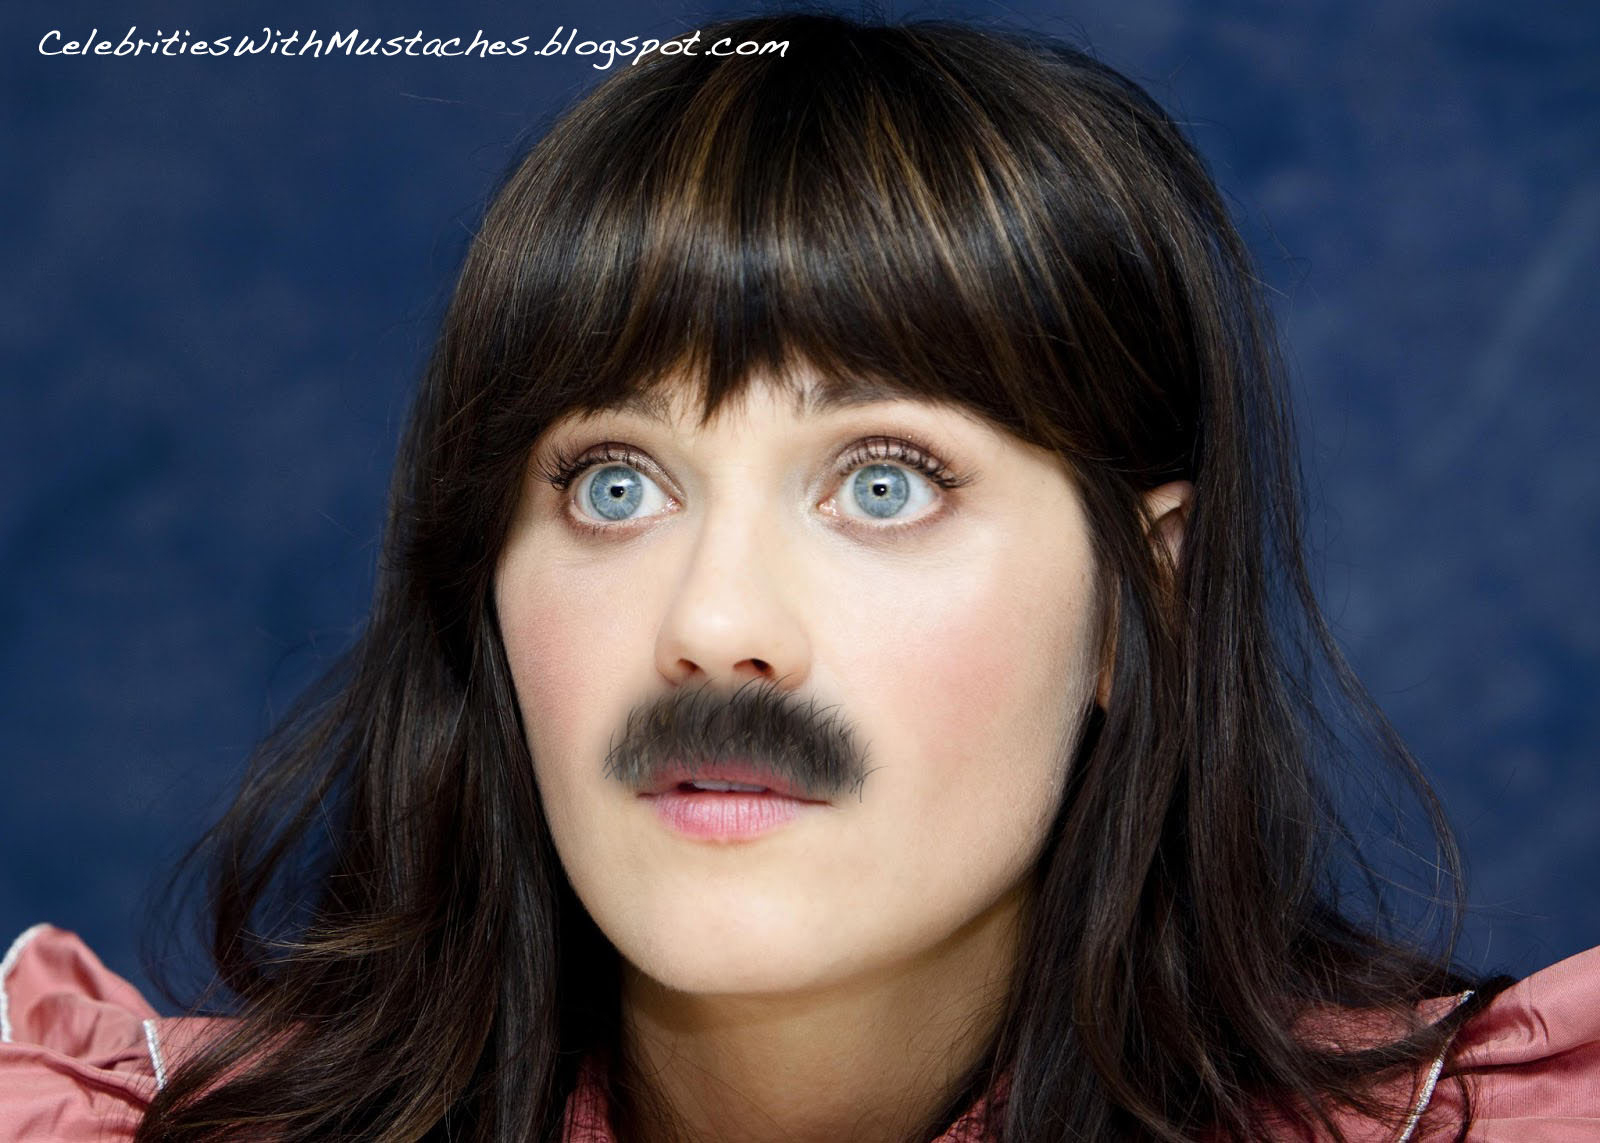 Zooey Deschanel with a mustache